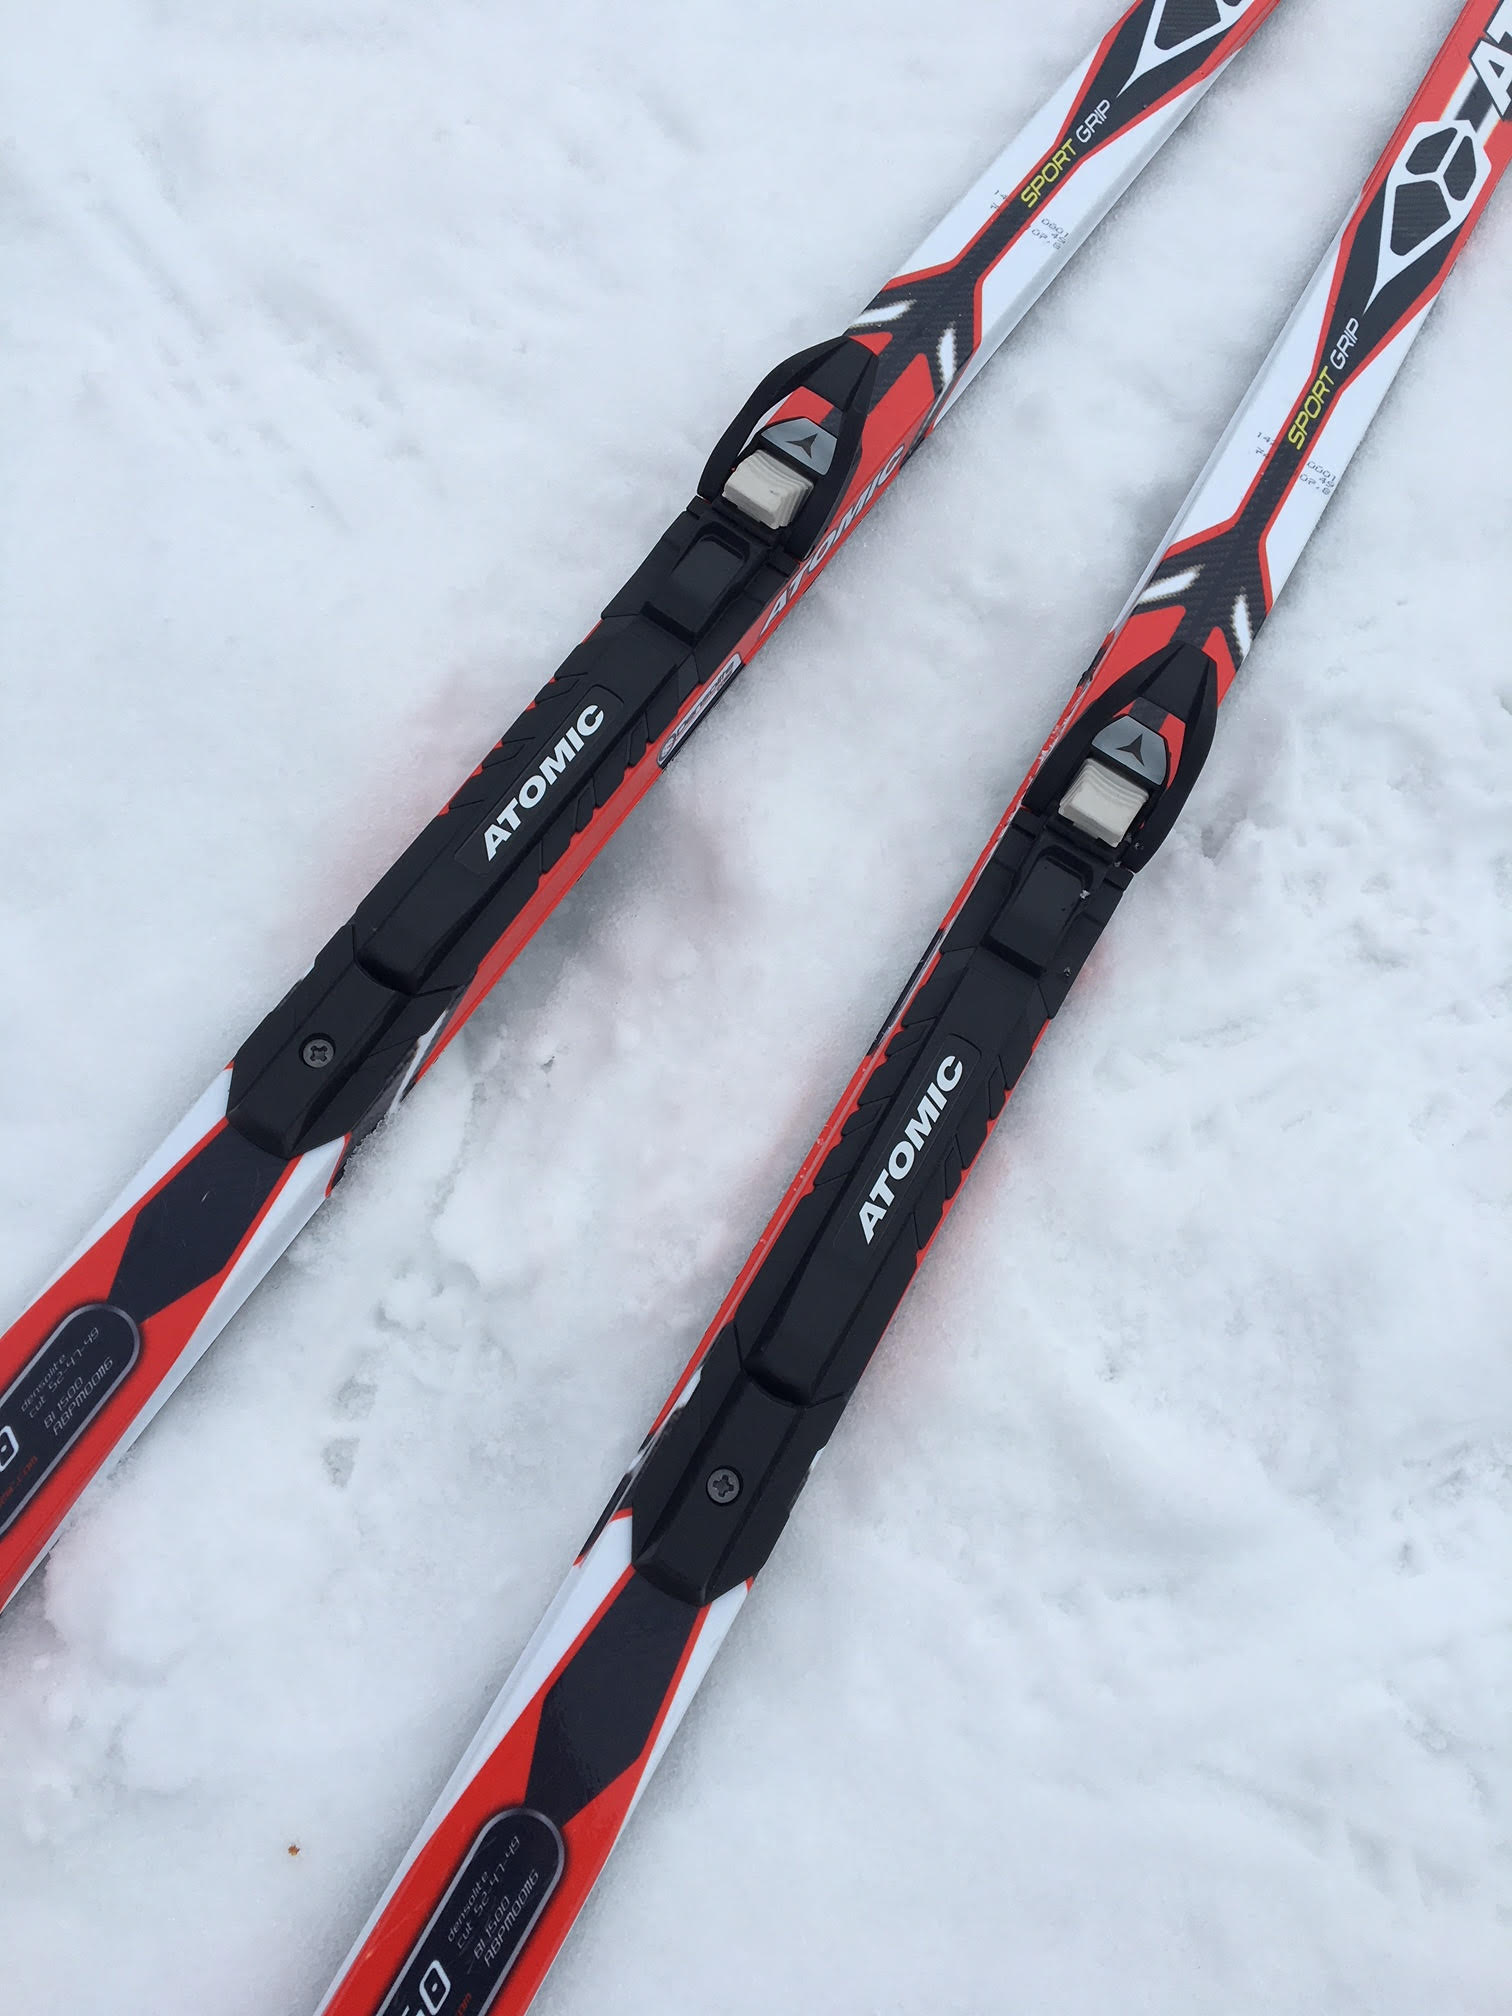 Cross country Ski bindings SNS and NNN system difference